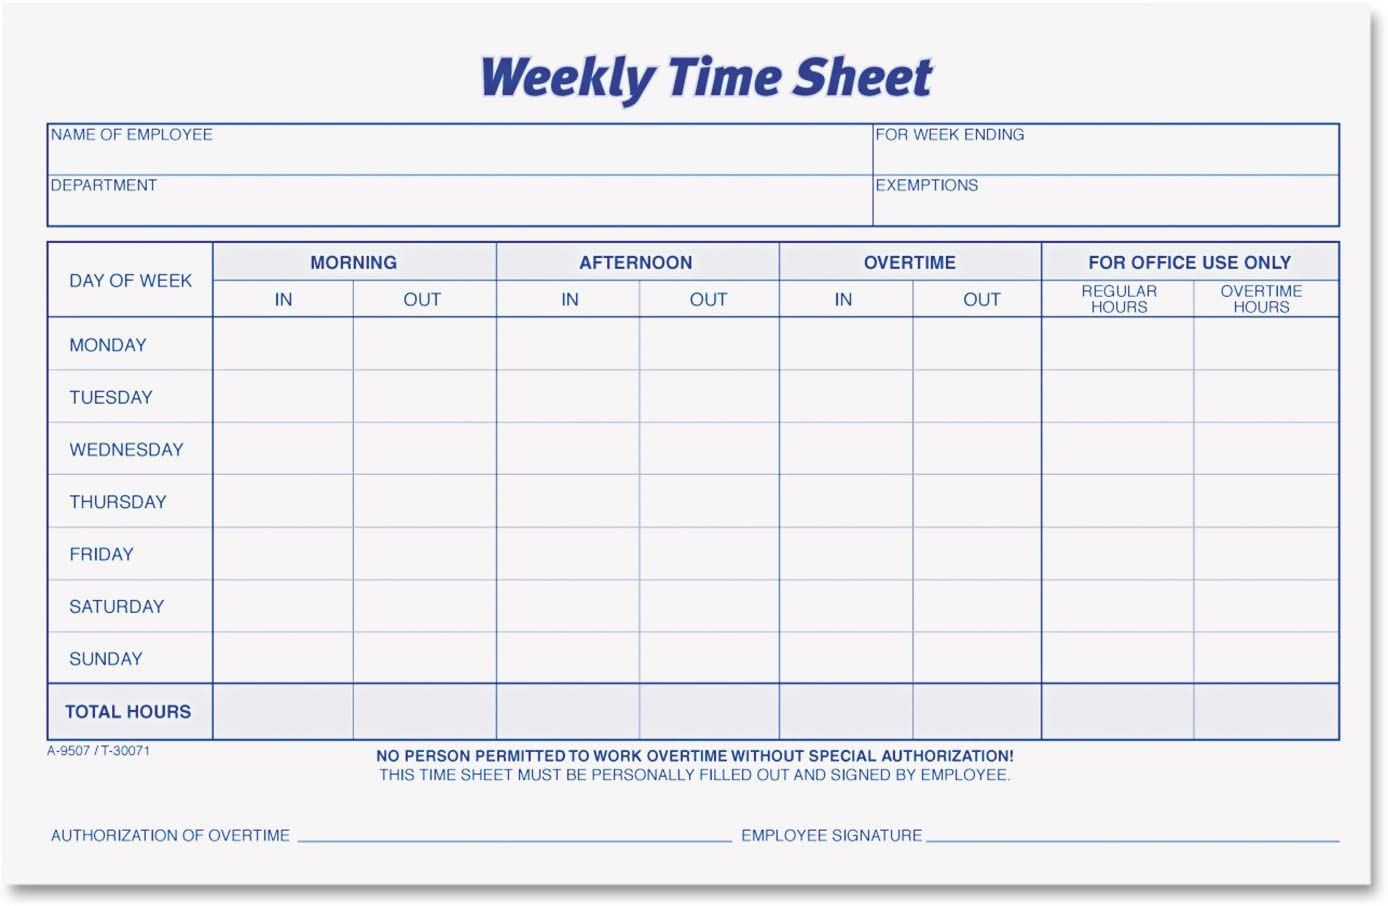 001 Unusual Employee Time Card Form Inspiration  Timesheet Template Excel Sheet FreeFull